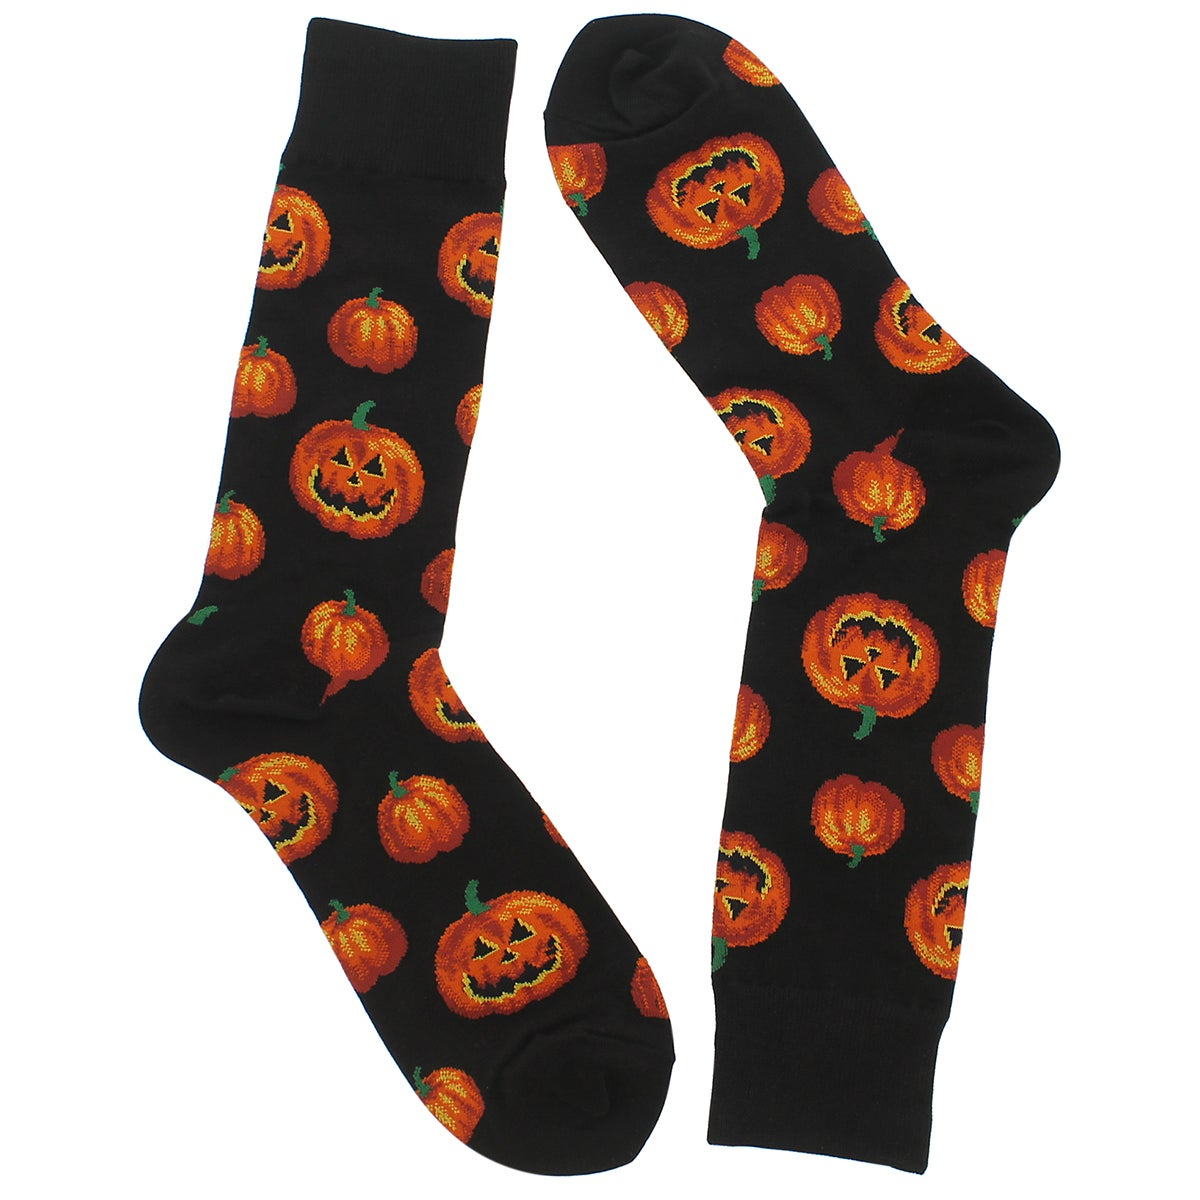 Mns Pumpkin blk/orange printed sock